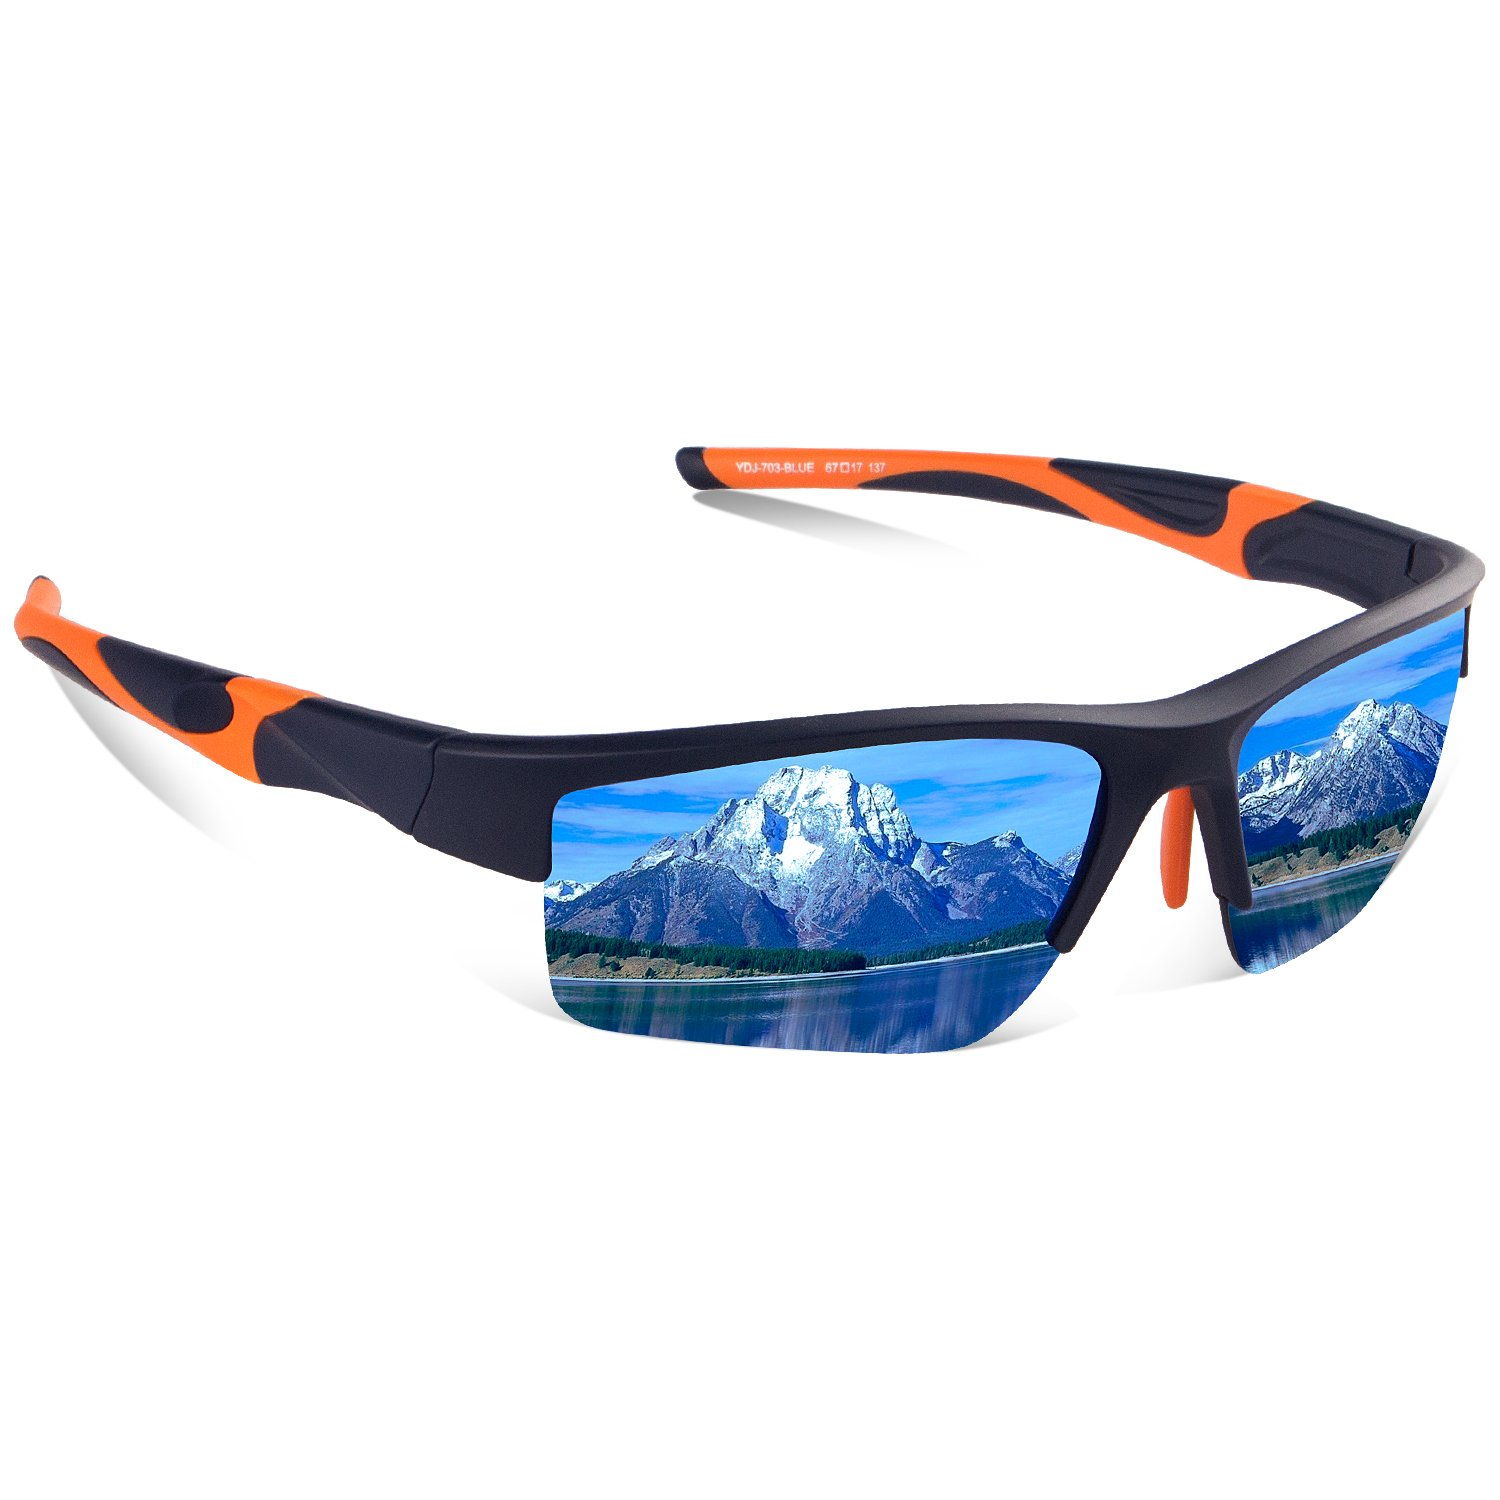 Avoalre TAC Polarized Sports Floating Sunglasses, 100% UV Protection Impact Resistance Sports Glasses for Men Women Driving Running Climbing Outdoor Activities Unbreakable Lightweight Tr90 Frame by Avoalre